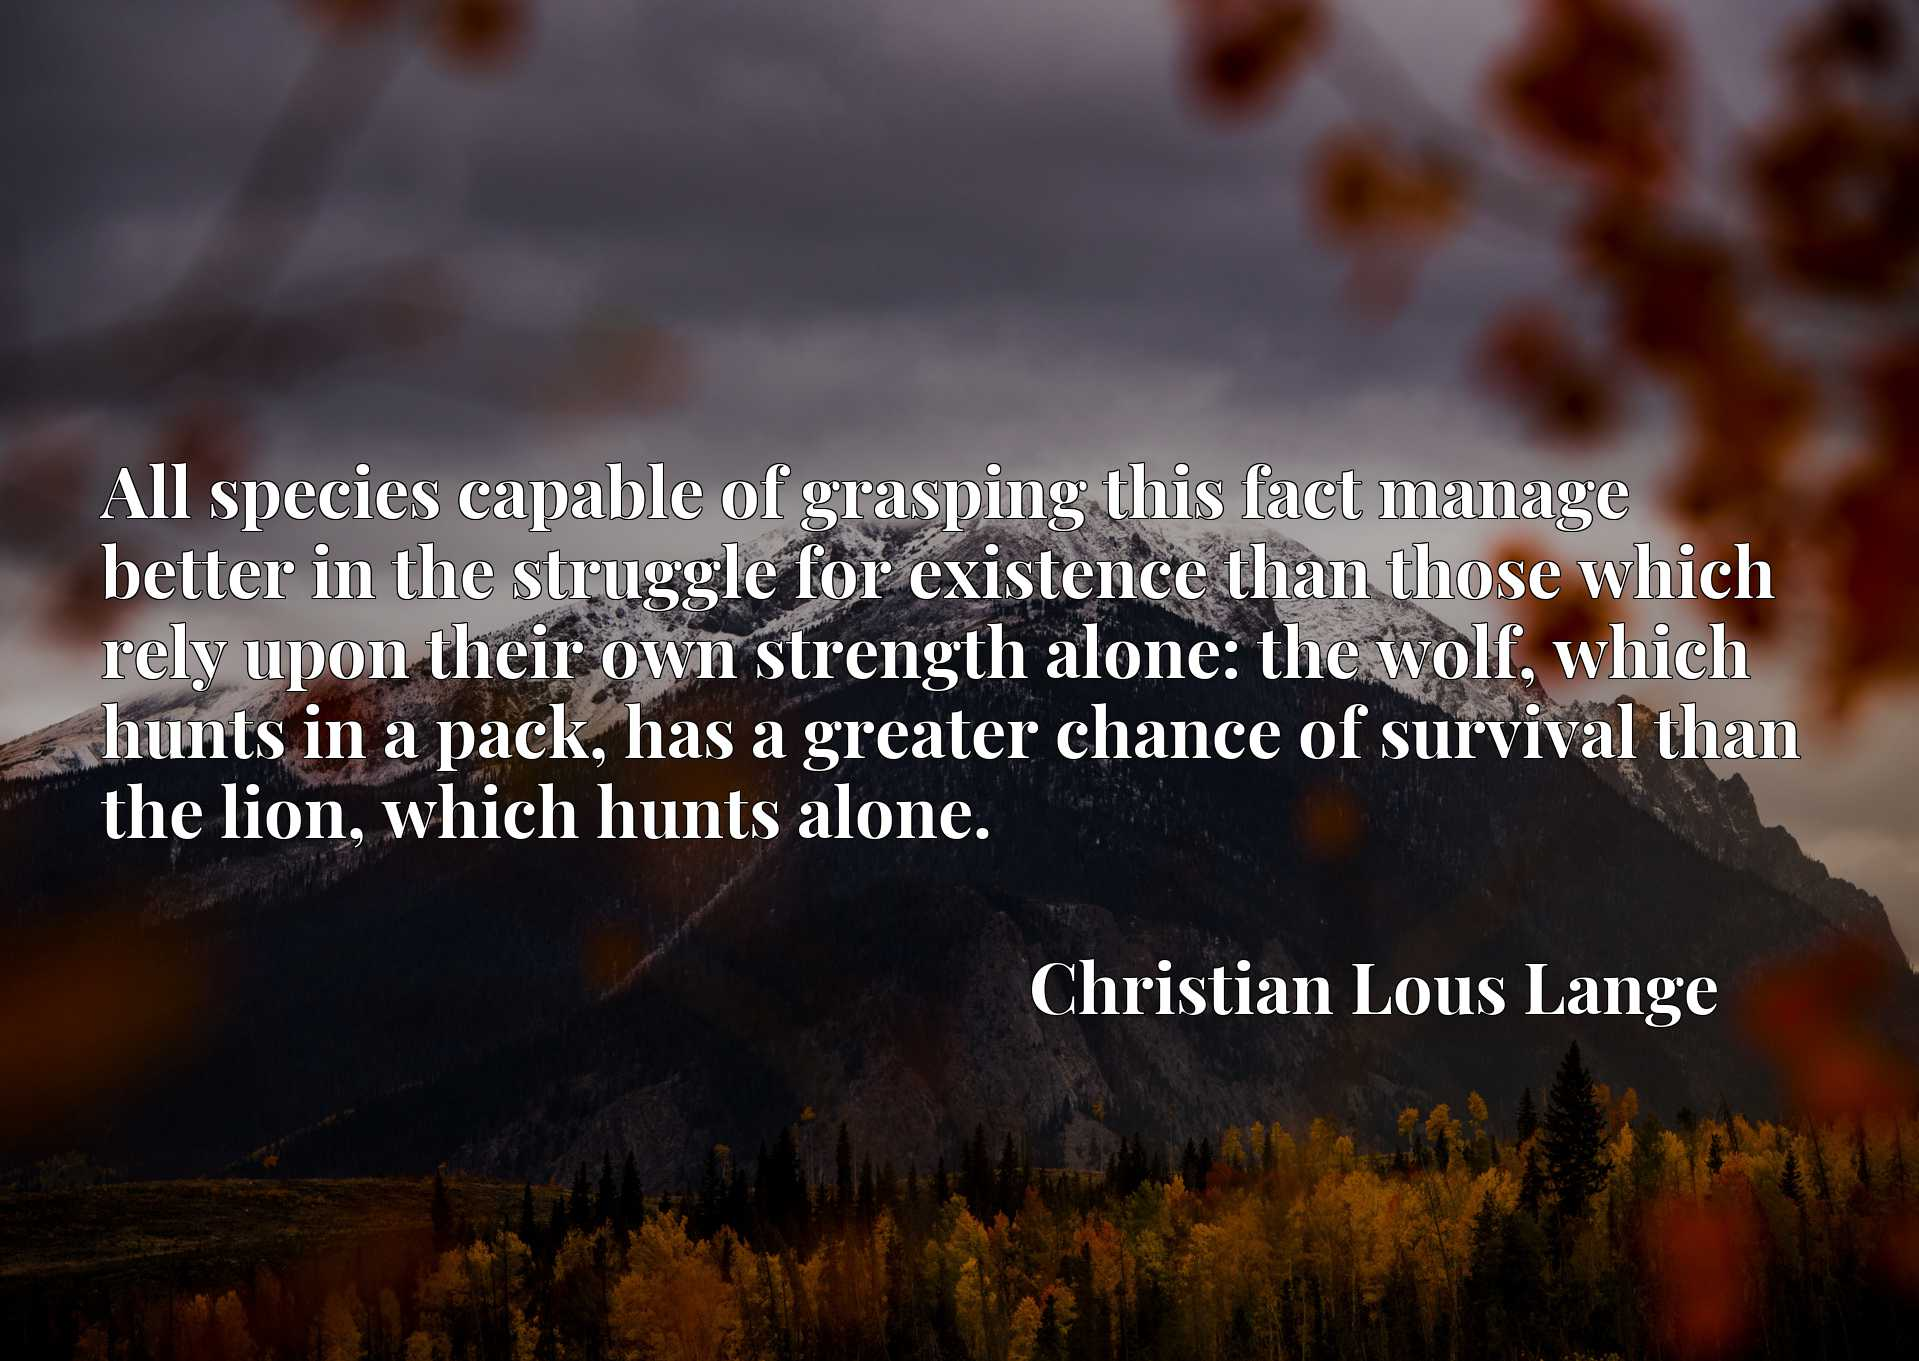 All species capable of grasping this fact manage better in the struggle for existence than those which rely upon their own strength alone: the wolf, which hunts in a pack, has a greater chance of survival than the lion, which hunts alone.